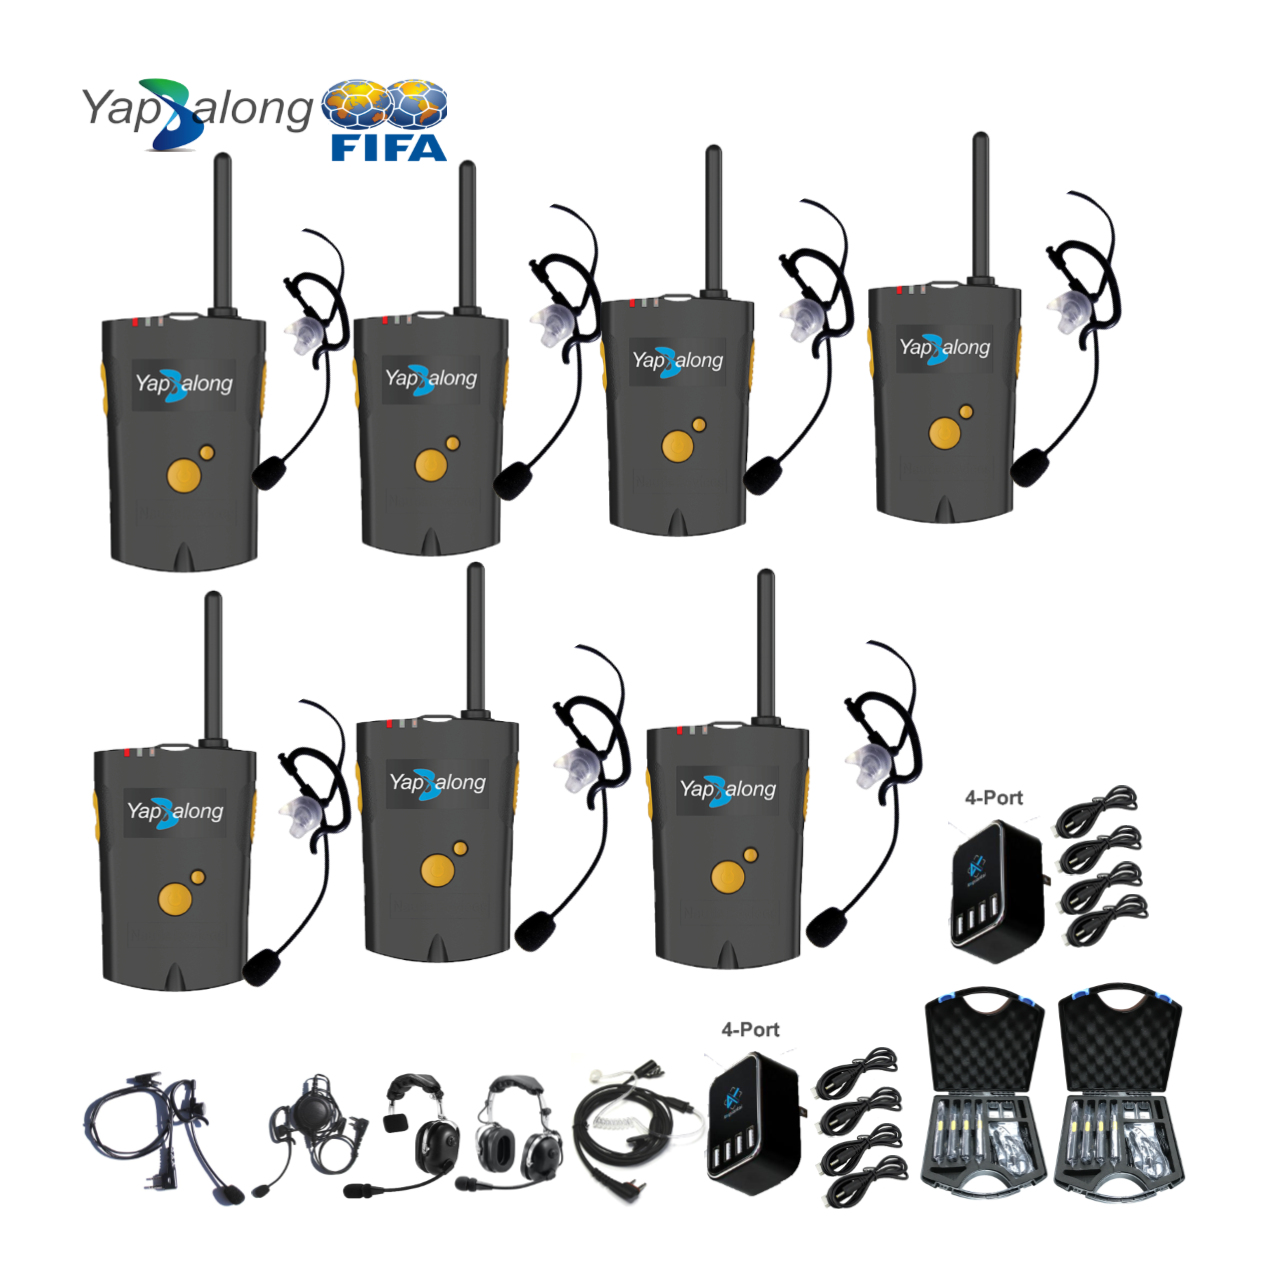 Yapalong 4000 (7-User) Complete Set Intercom Systems Intercom Systems